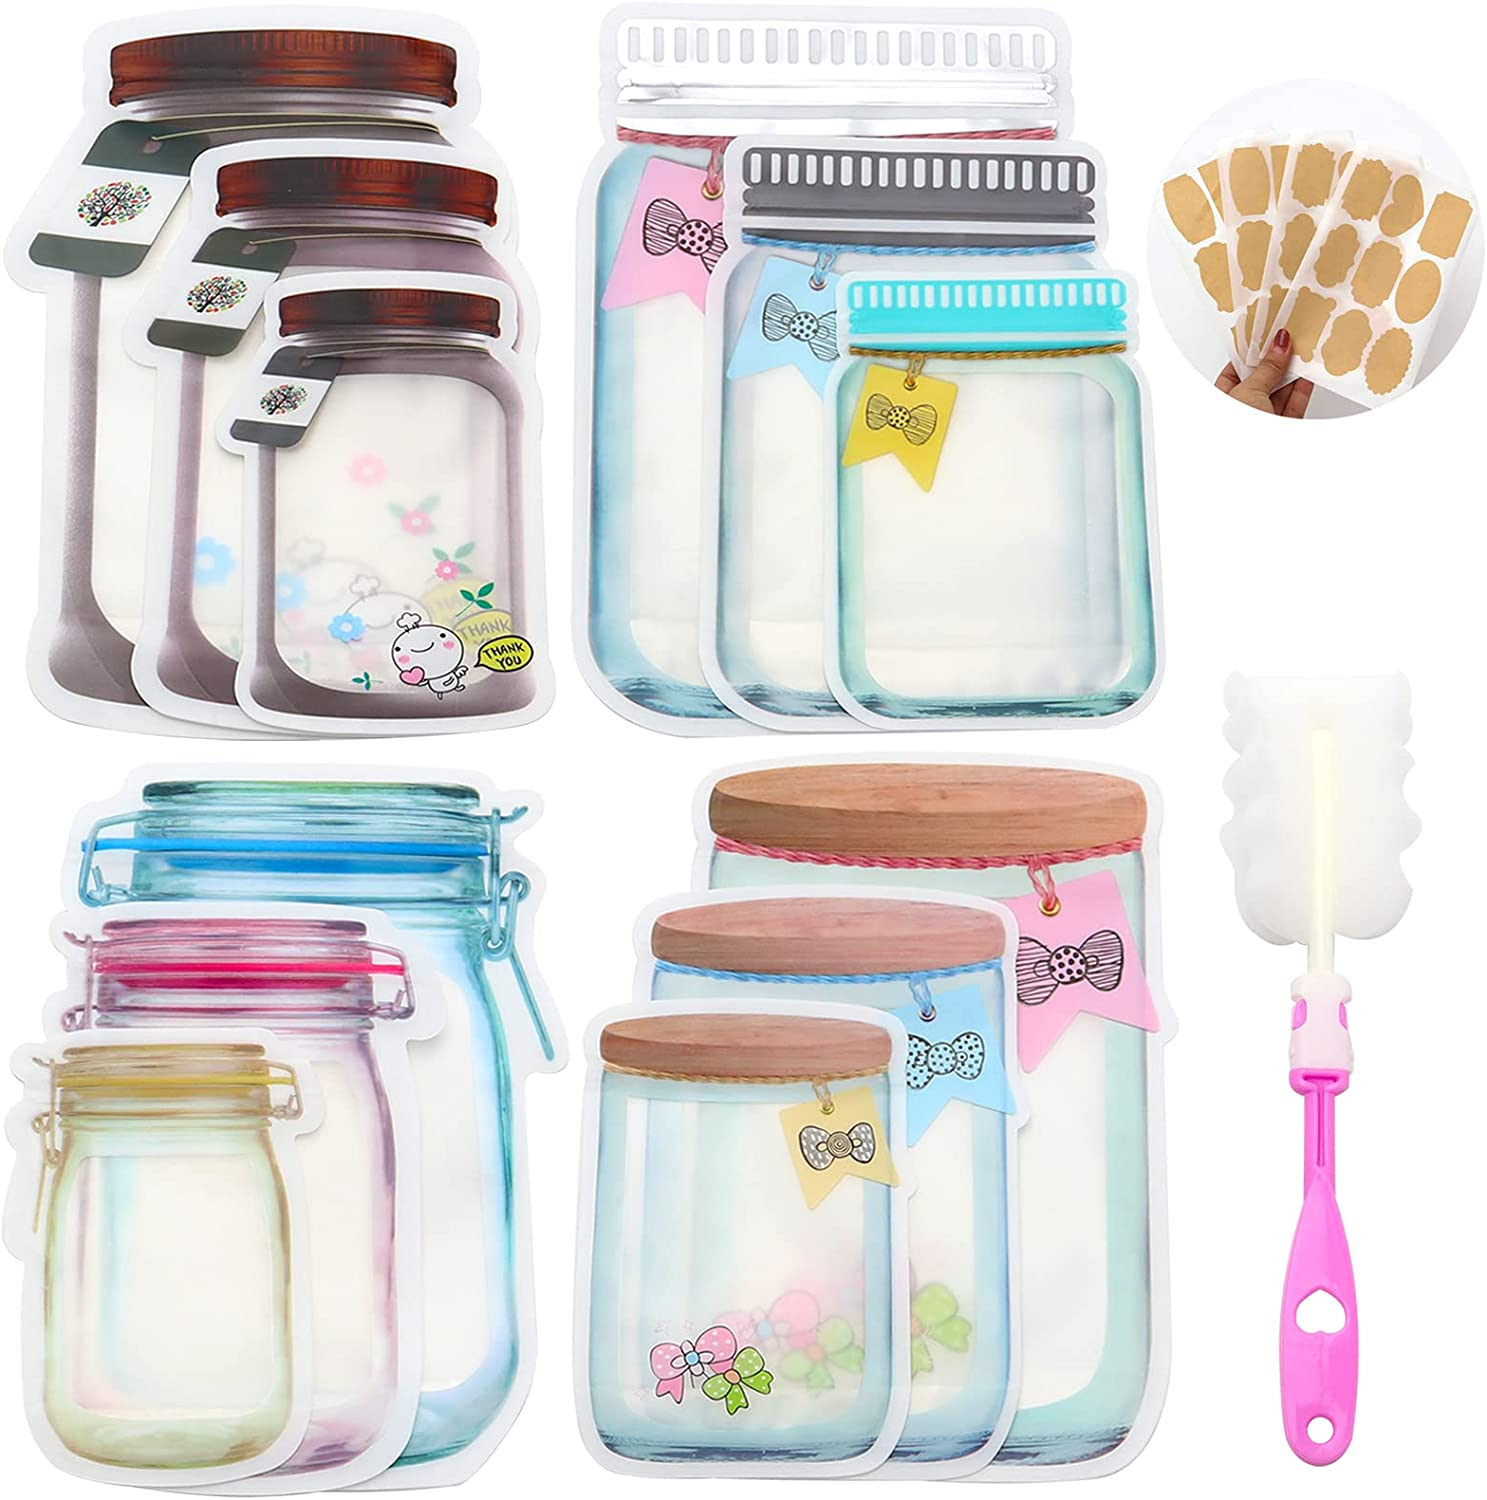 36 pcs Mason Jar Ziplock Bags,Reusable Zipper Sealed Snacks Sandwich Bags with Cleaning Brush and Custom Labels,Airtight Food Storage Pouch for Kitchen Travel Camping Organizer and Kids